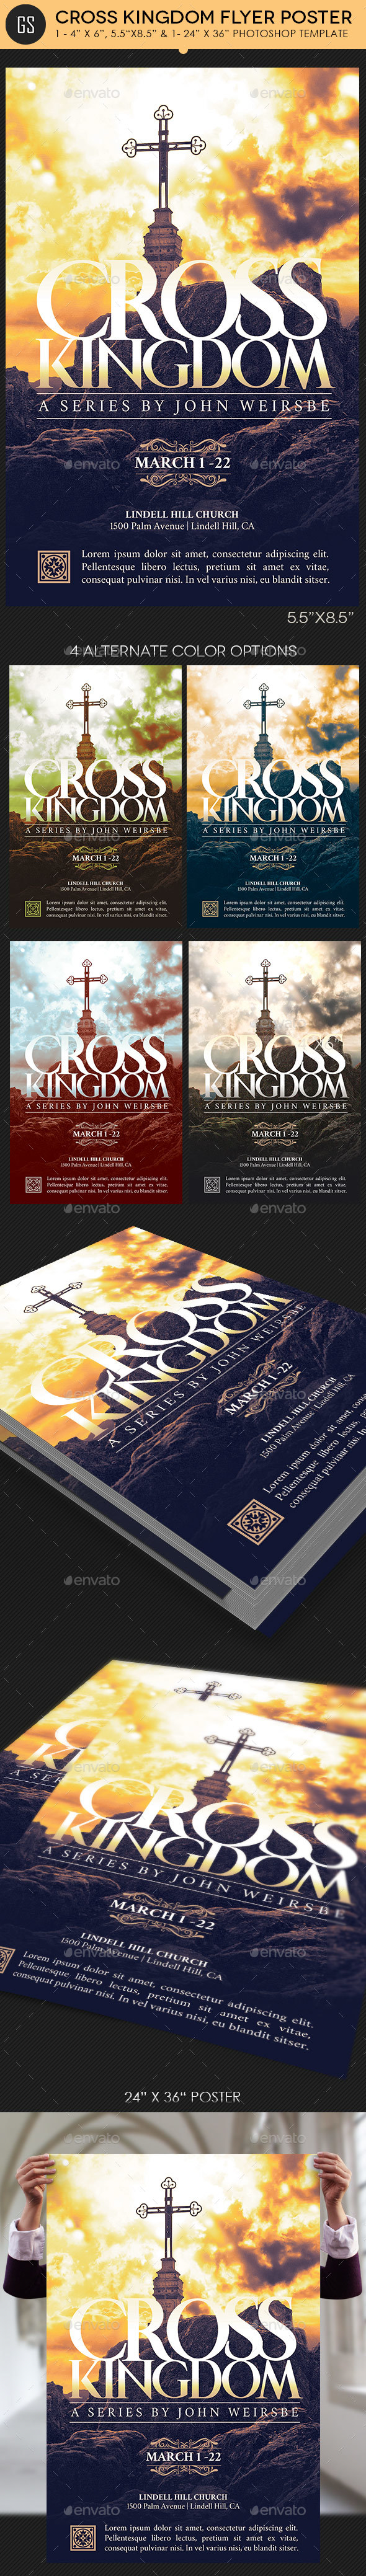 Cross Kingdom Flyer Poster Template - Church Flyers